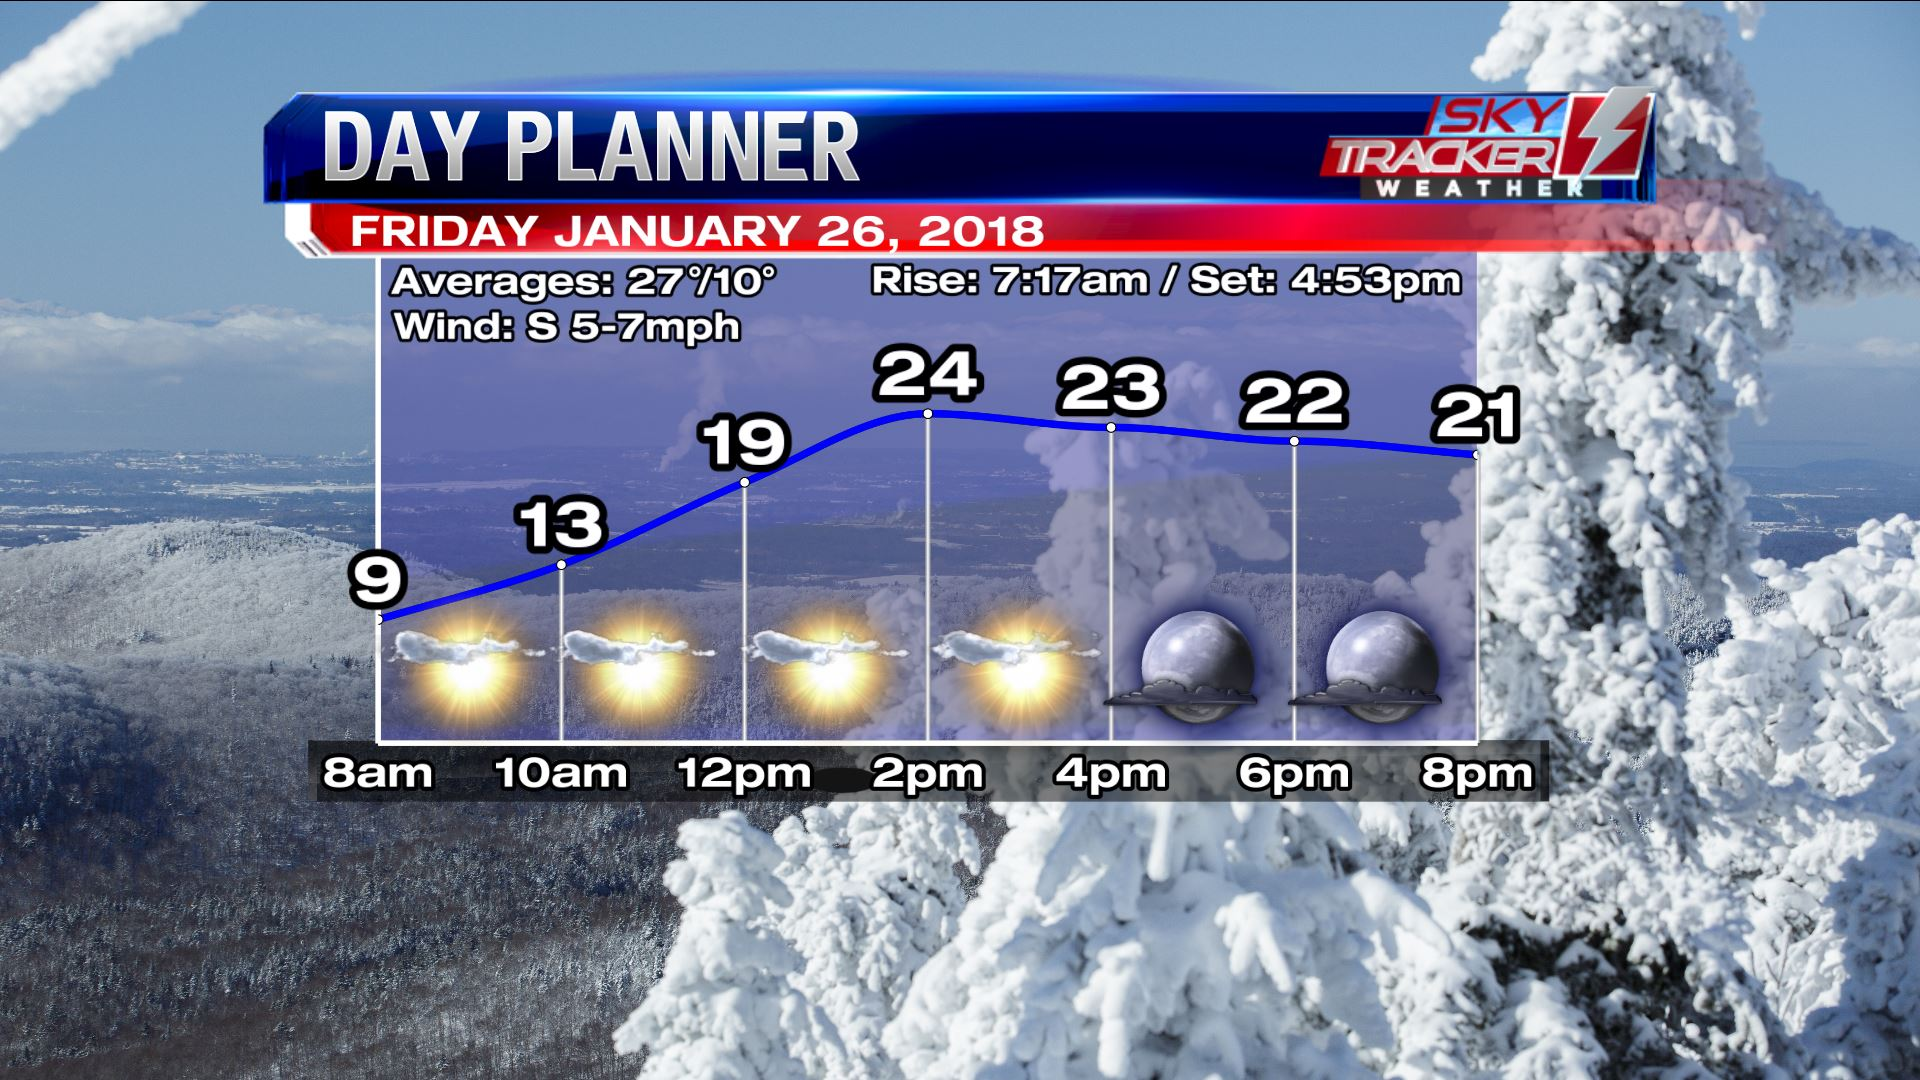 Planner for Friday January 26 2018